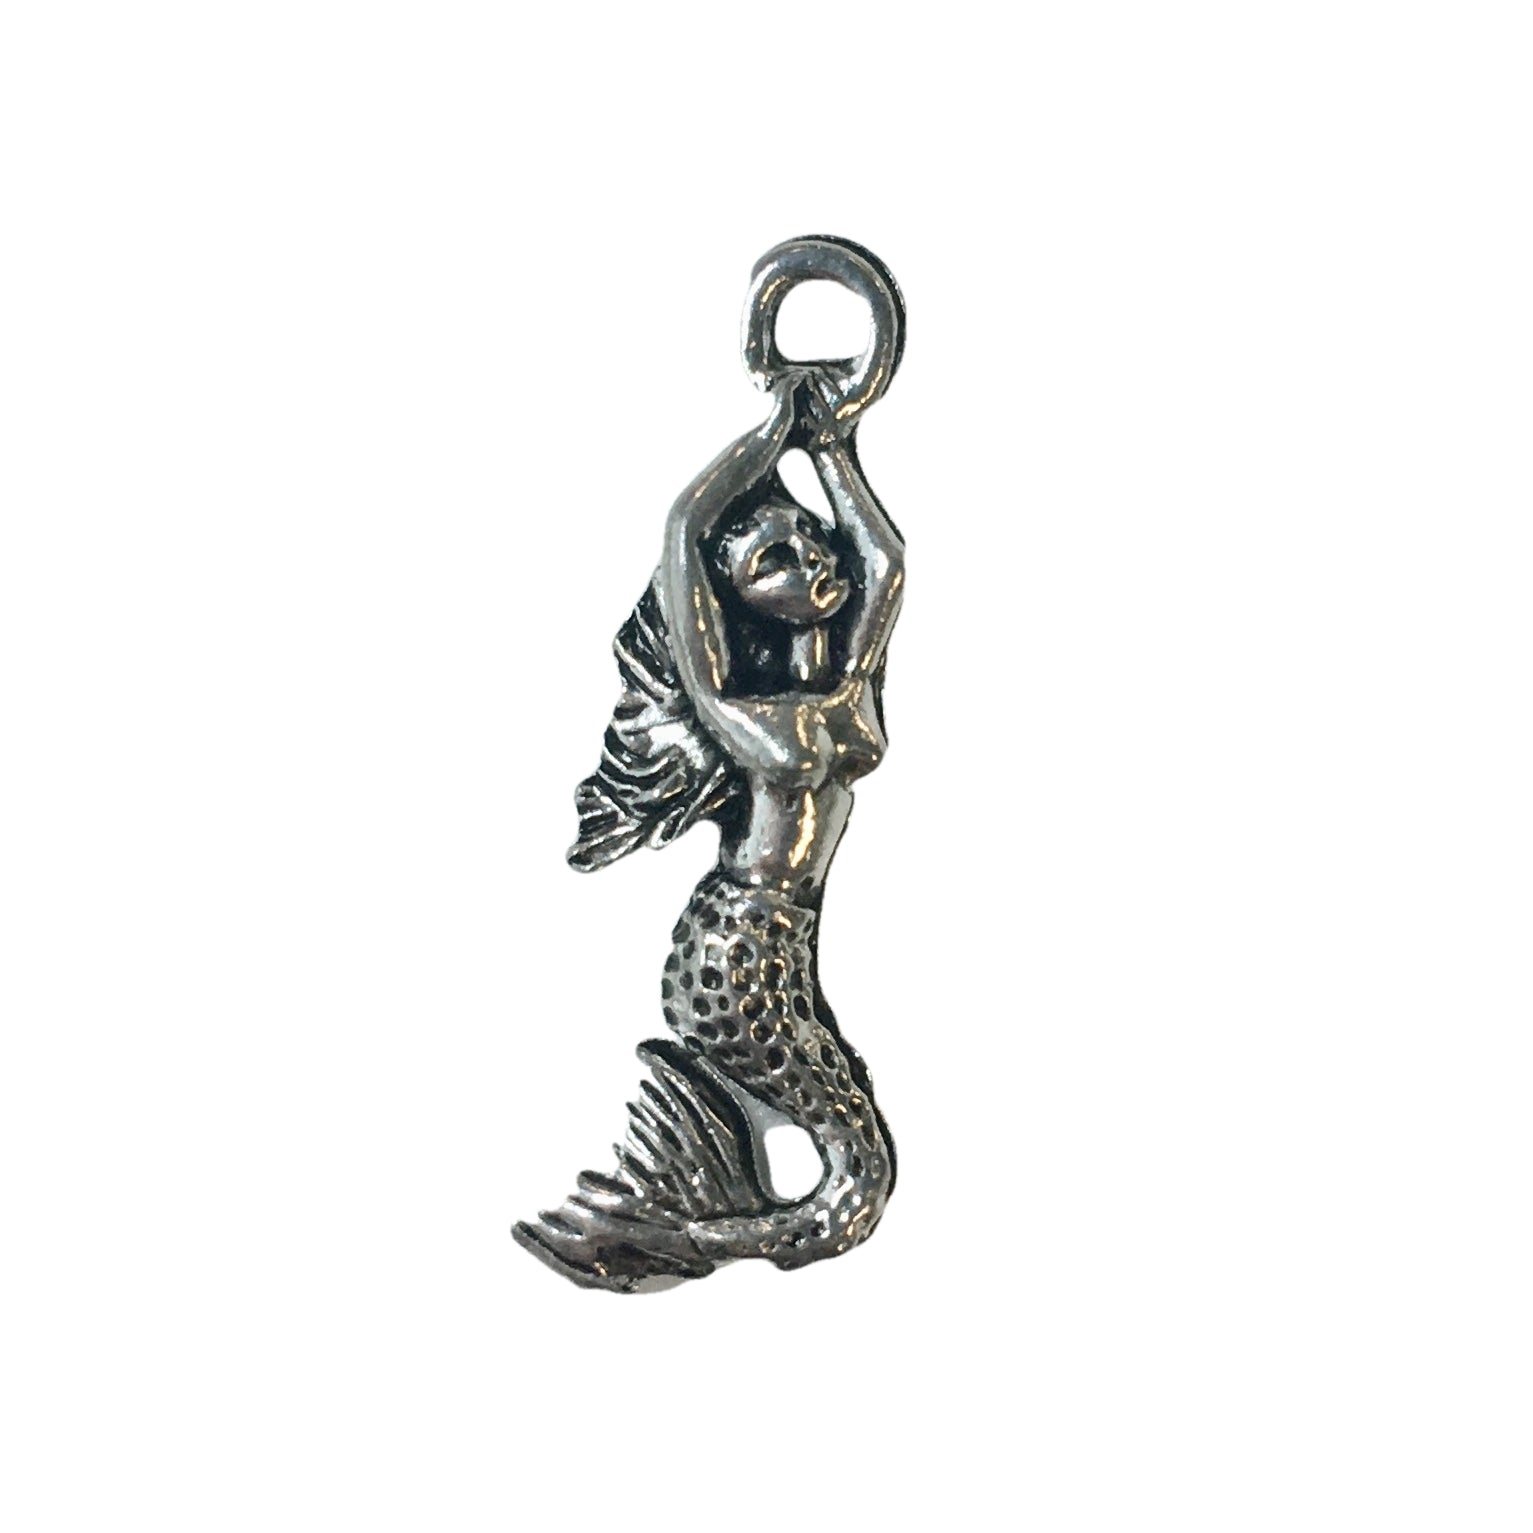 Mermaid Swimming Charms - Qty 5 - Lead Free Pewter Silver - American Made